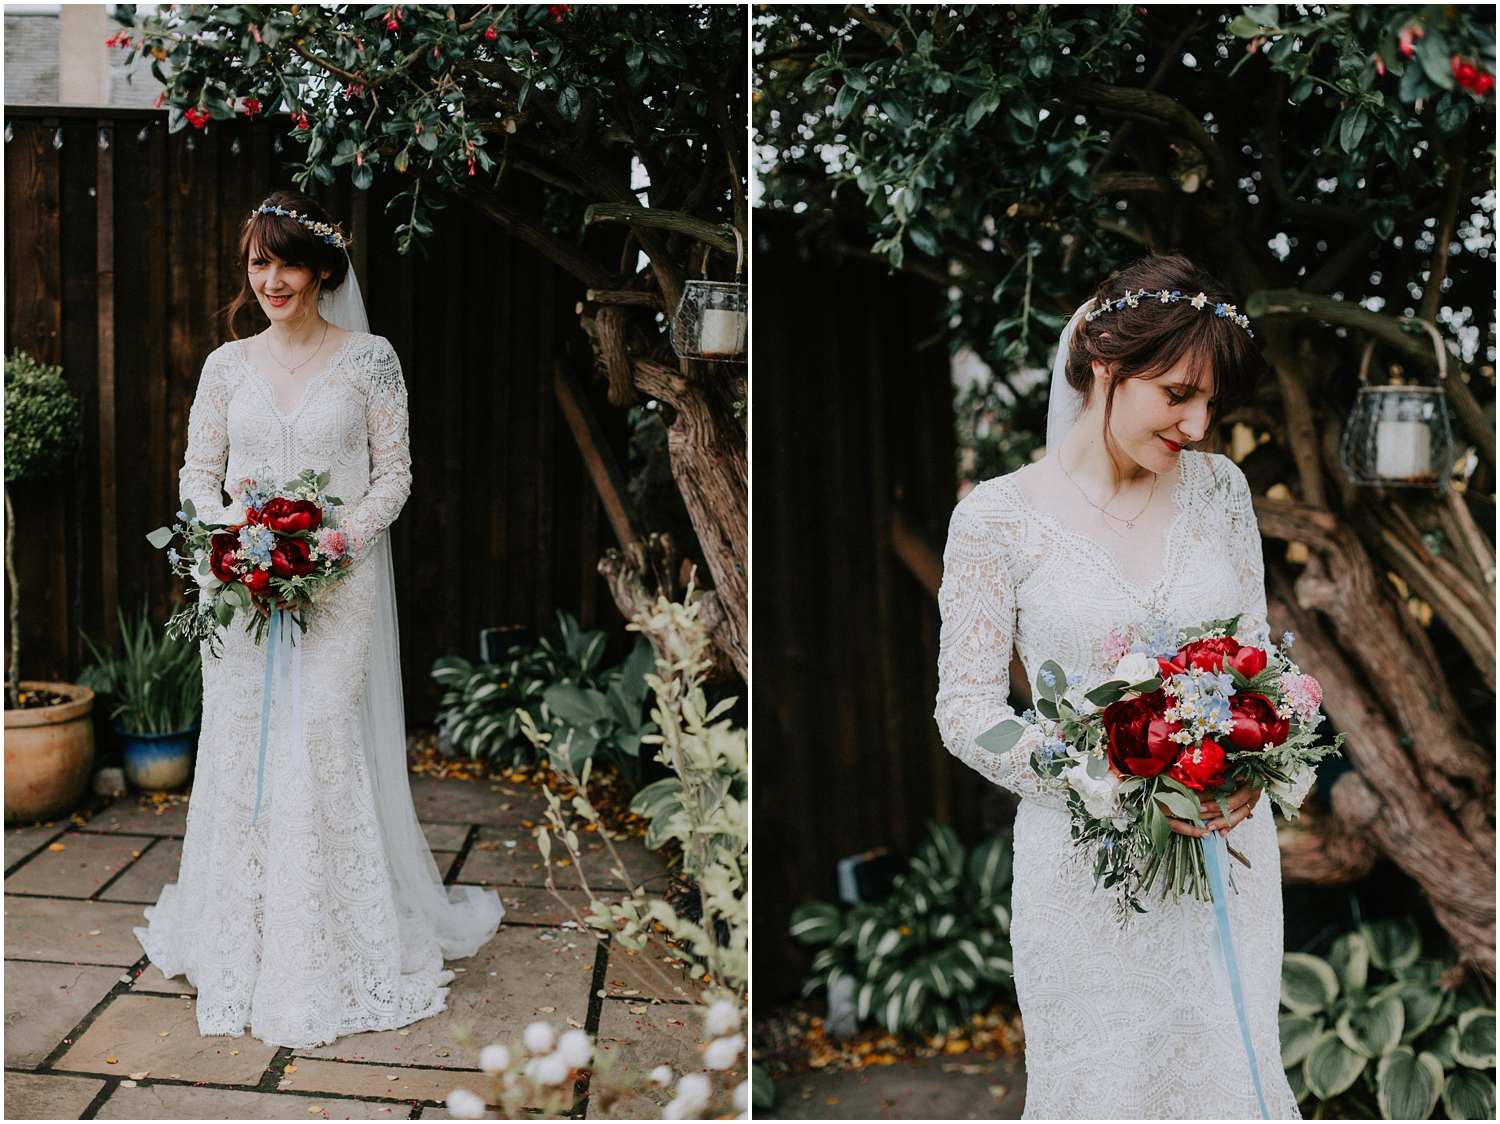 The outdoor natural bridal portrait